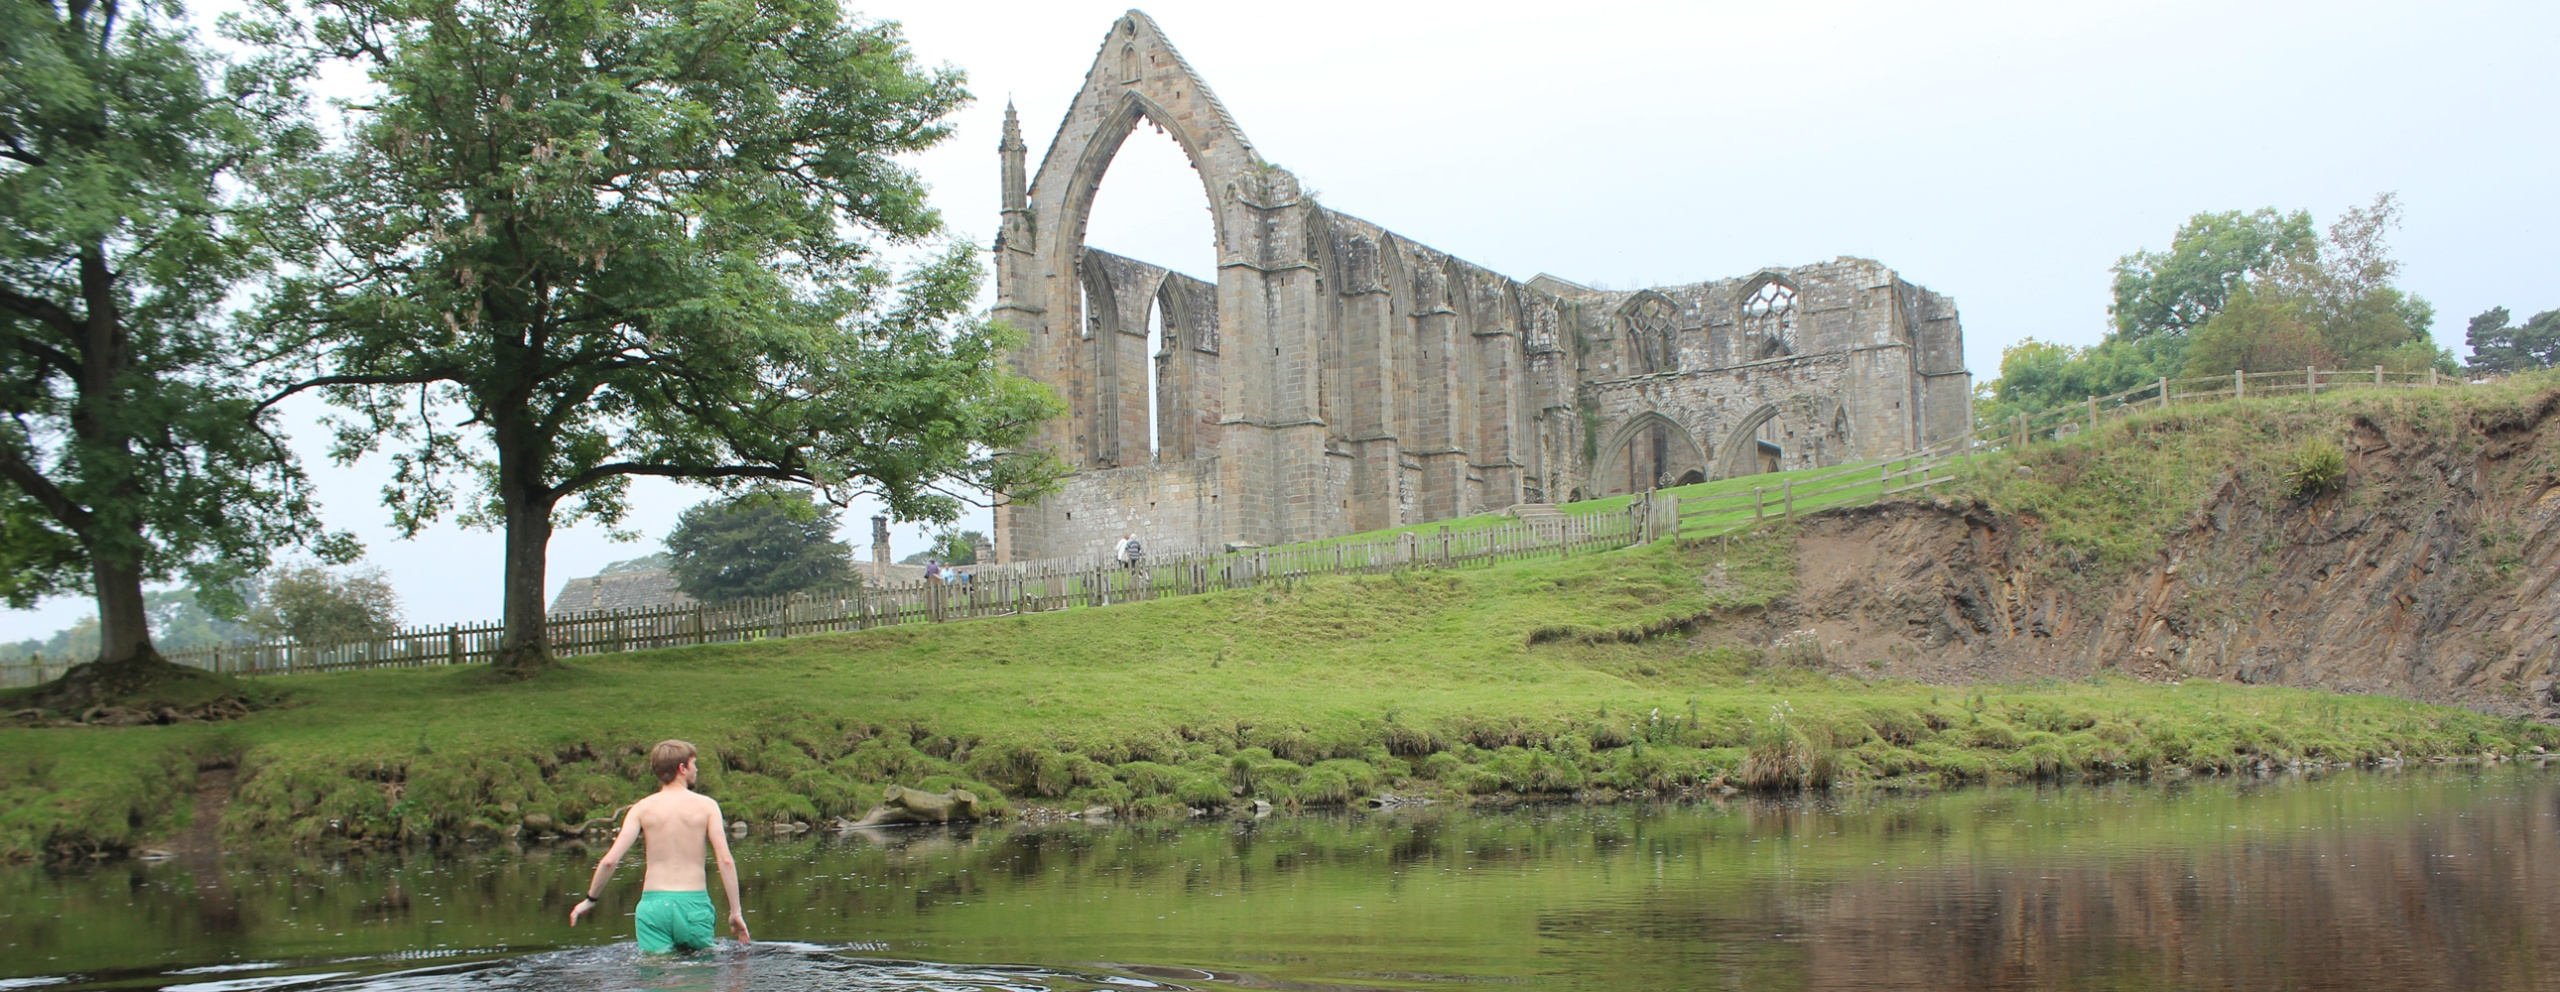 bolton-abbey-header